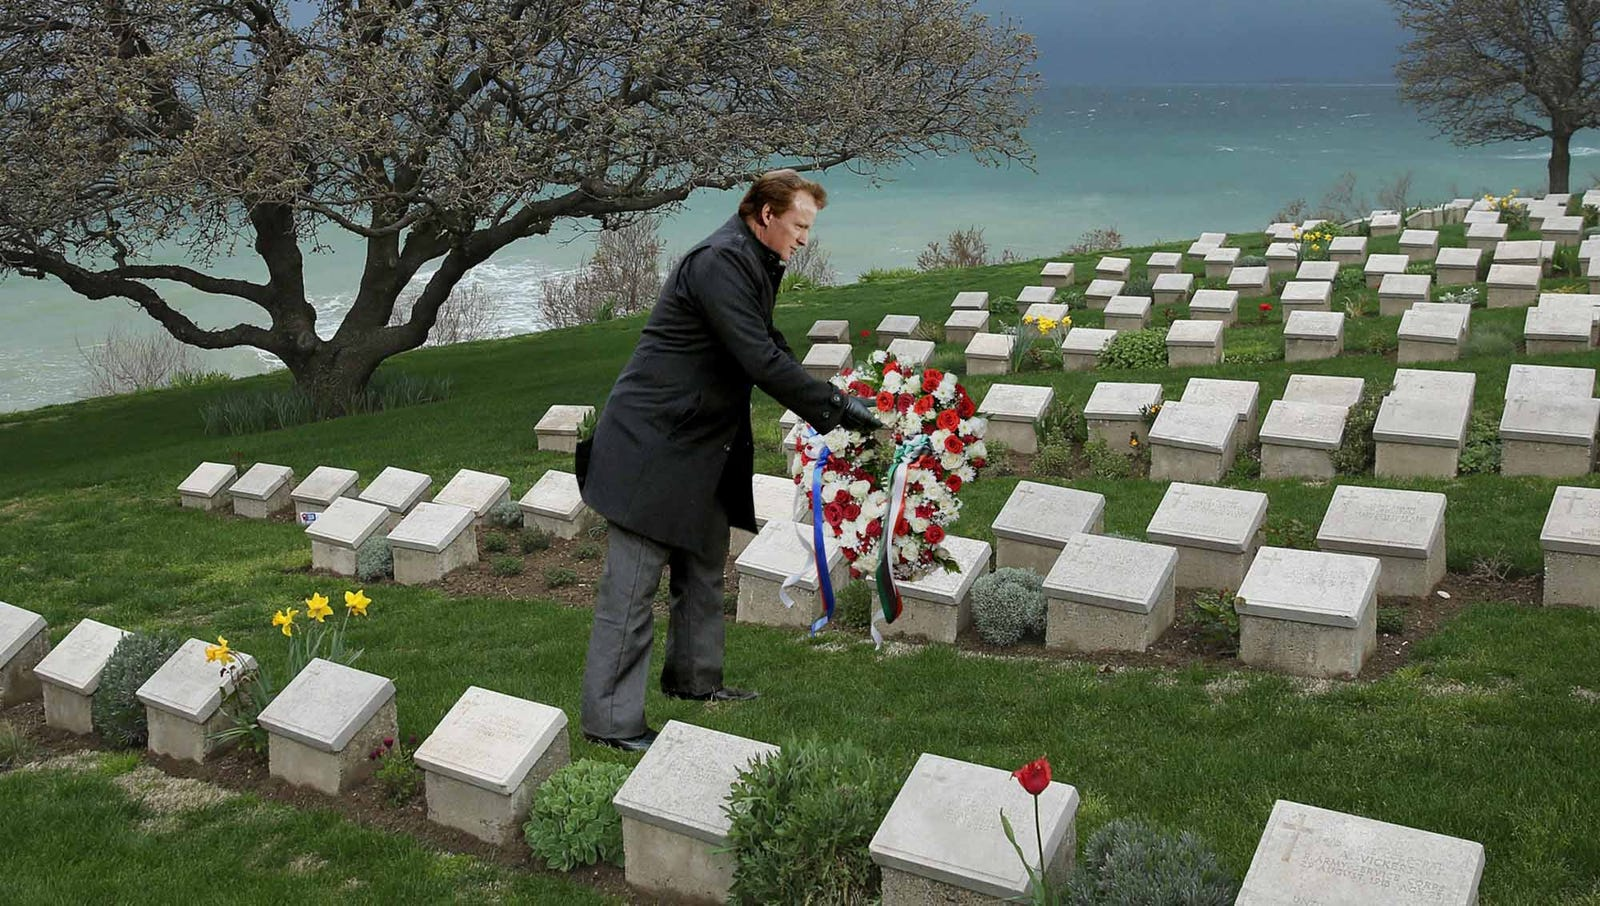 Roger Goodell Lays Wreath At National Football League Cemetery In Super Bowl Tradition